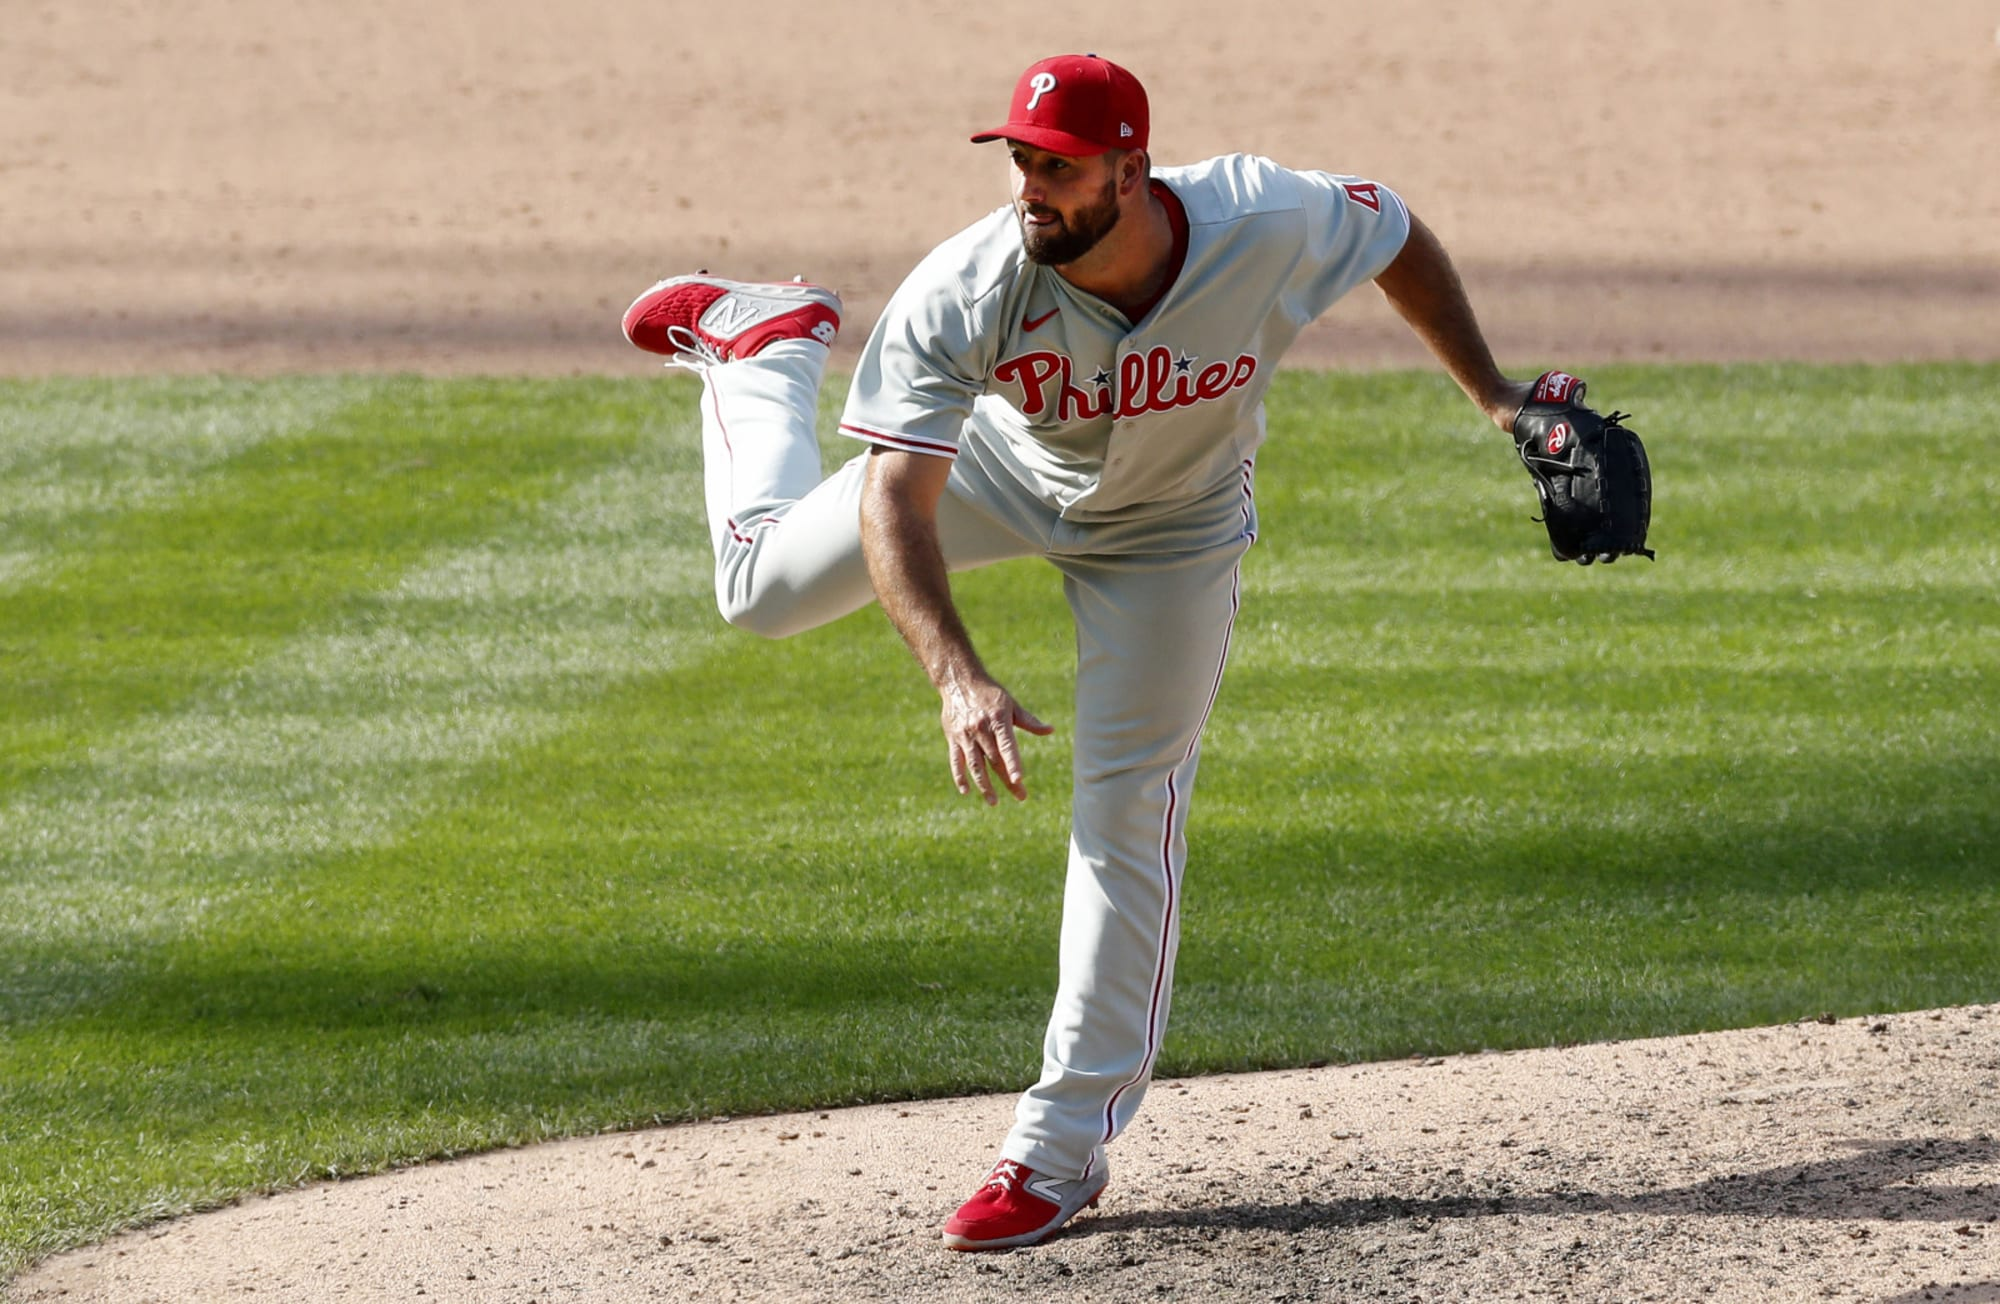 Oakland A's: Three bargain relievers to look at in free agency